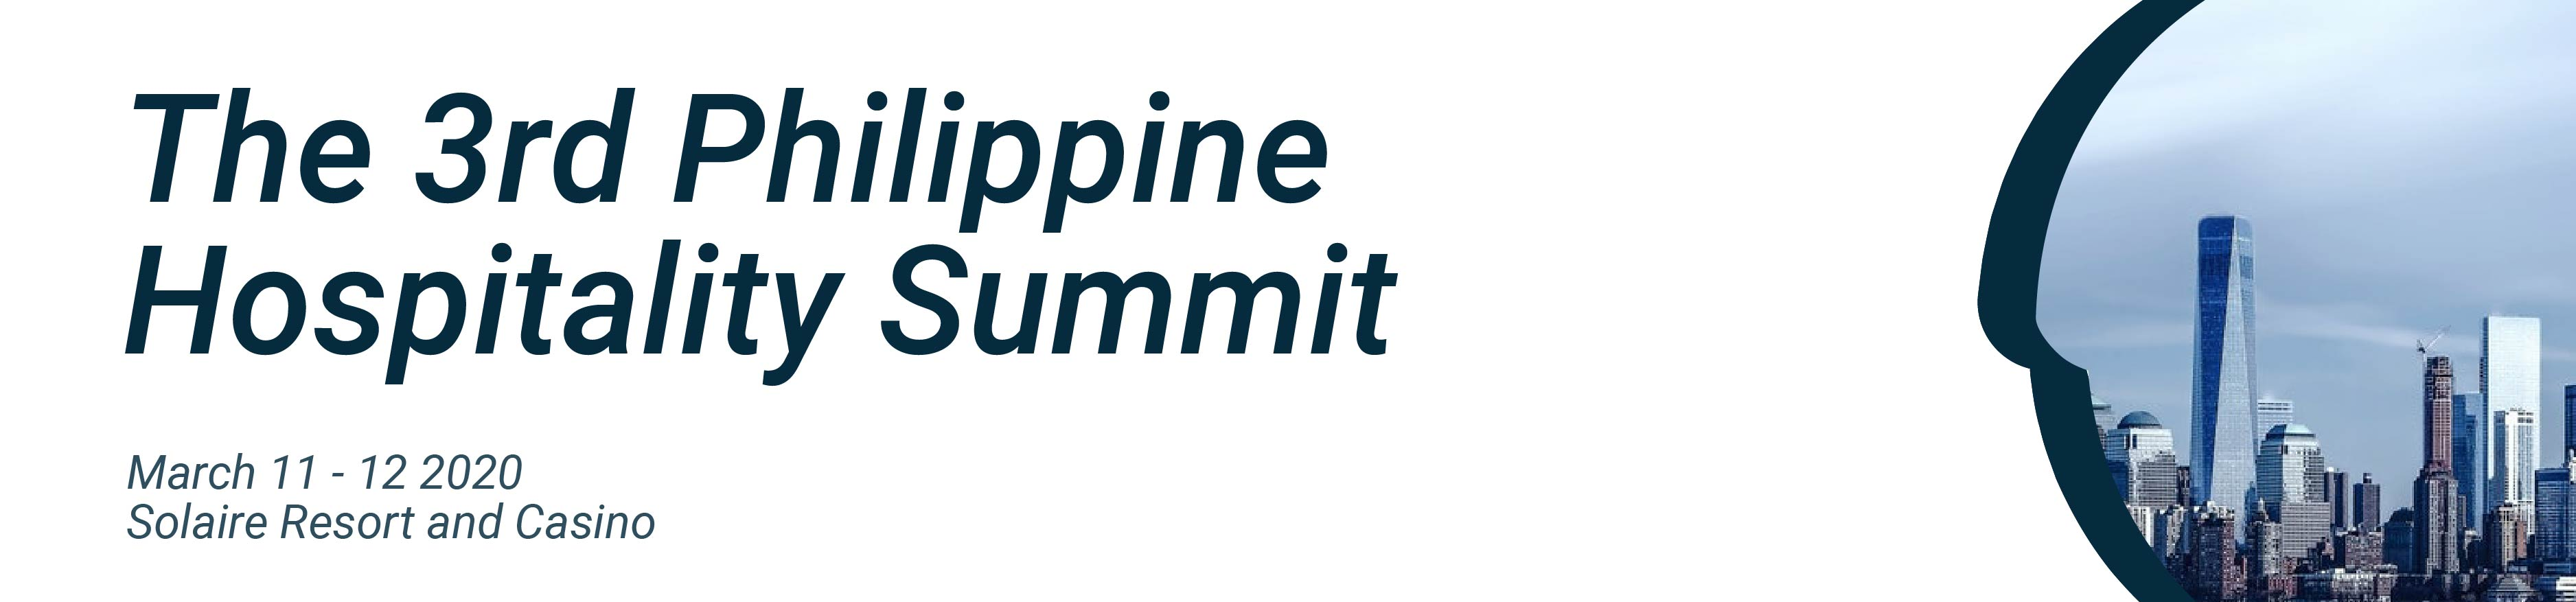 picture of the 3rd Philippine Hospitality Summit dates